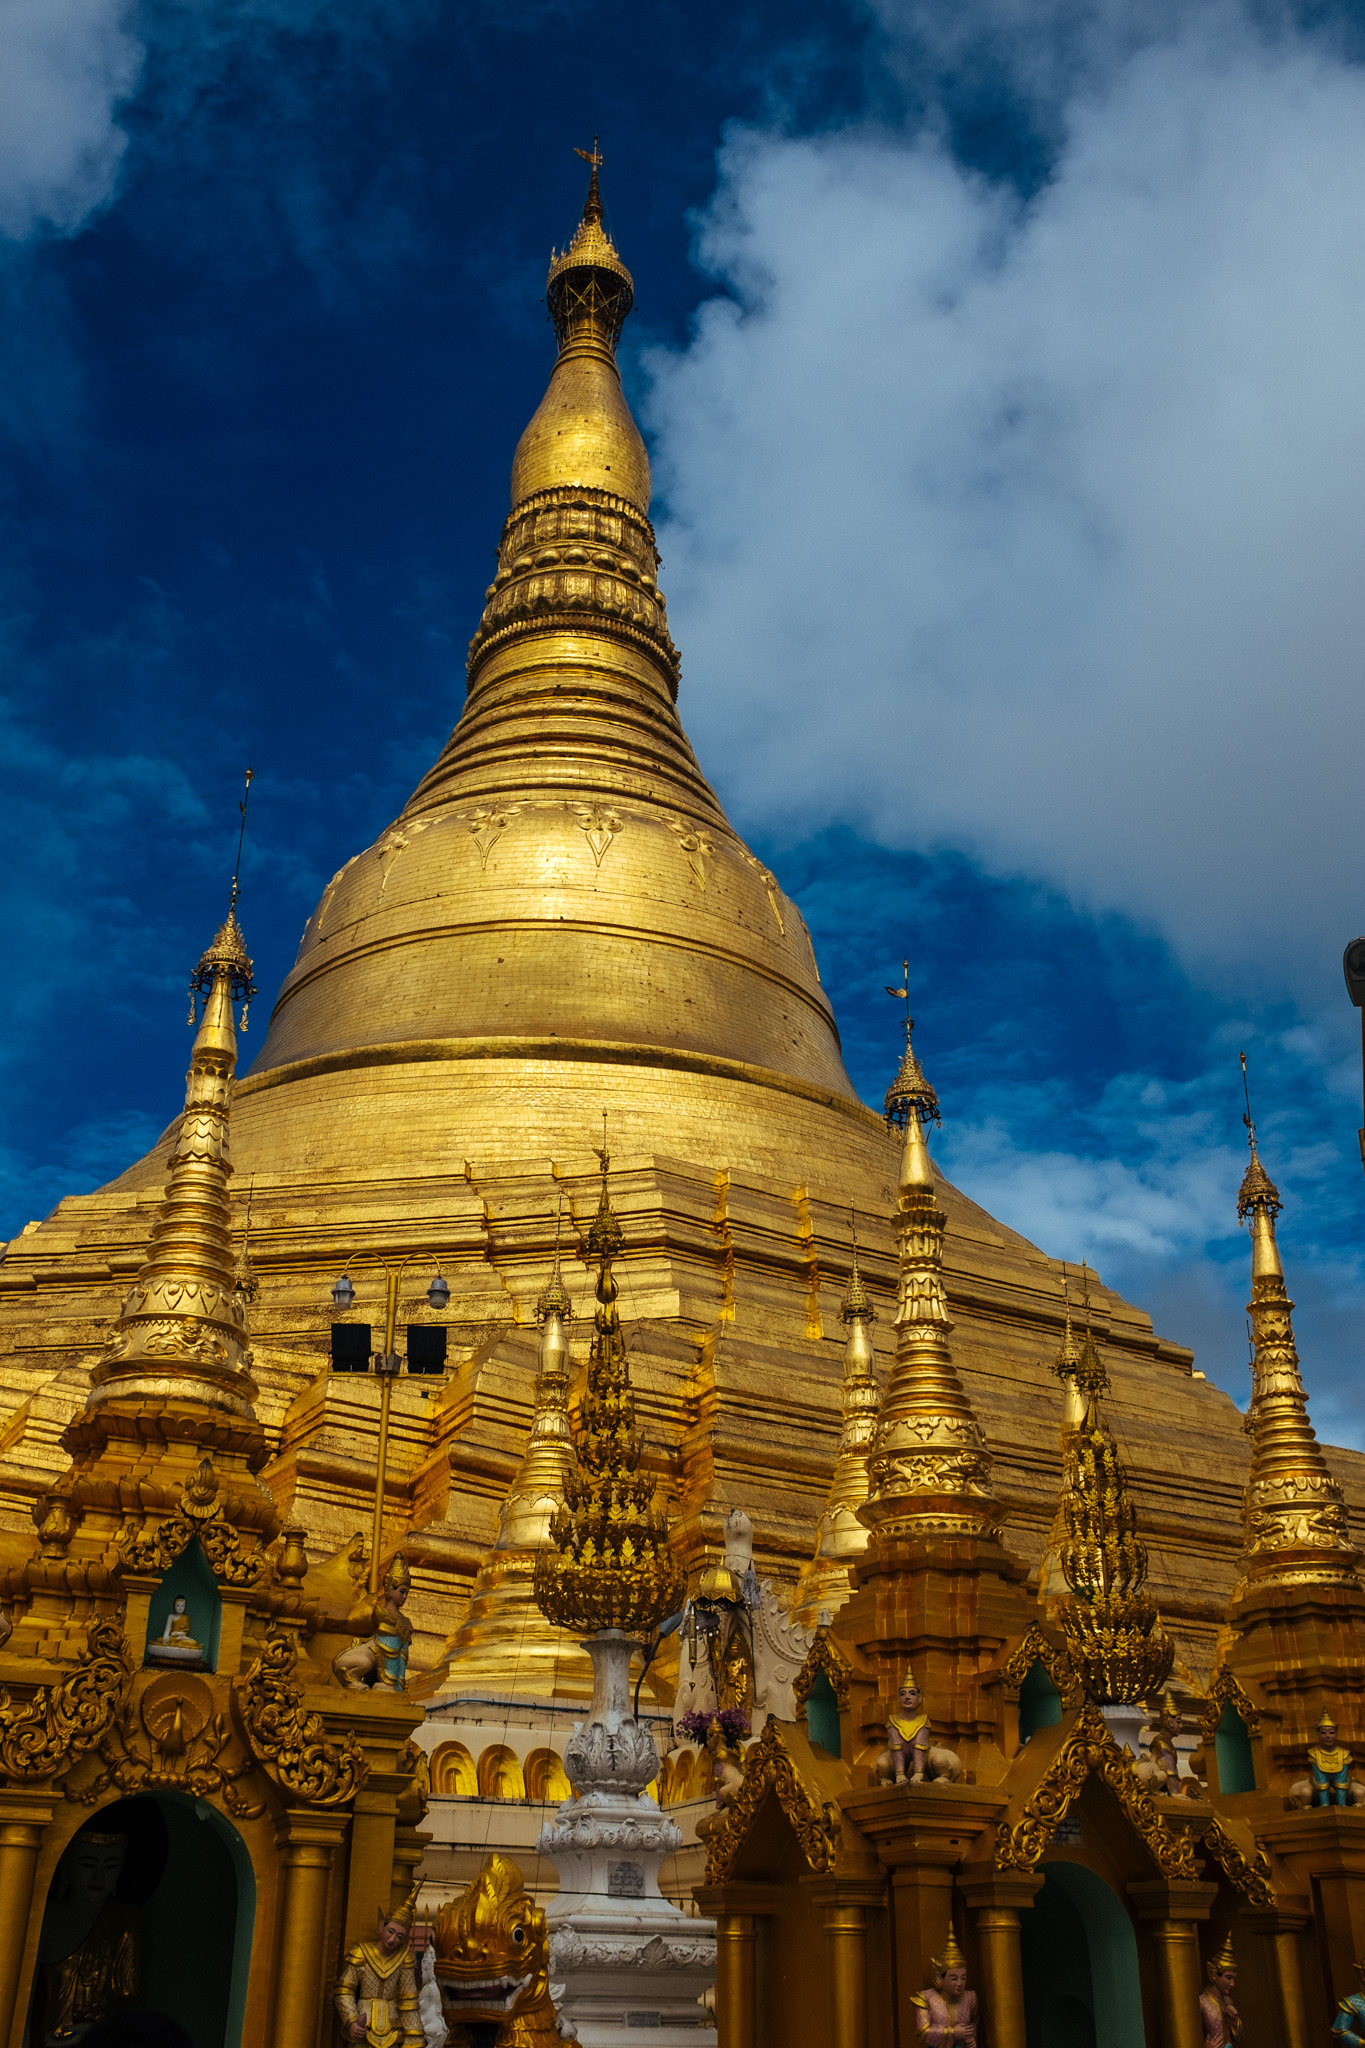 The Shwedagon Pagoda in Yangon is a gilded stupa and the most important Buddhist pagoda in Myanmar. The religion is practiced by 90% of the Myanmar's population.